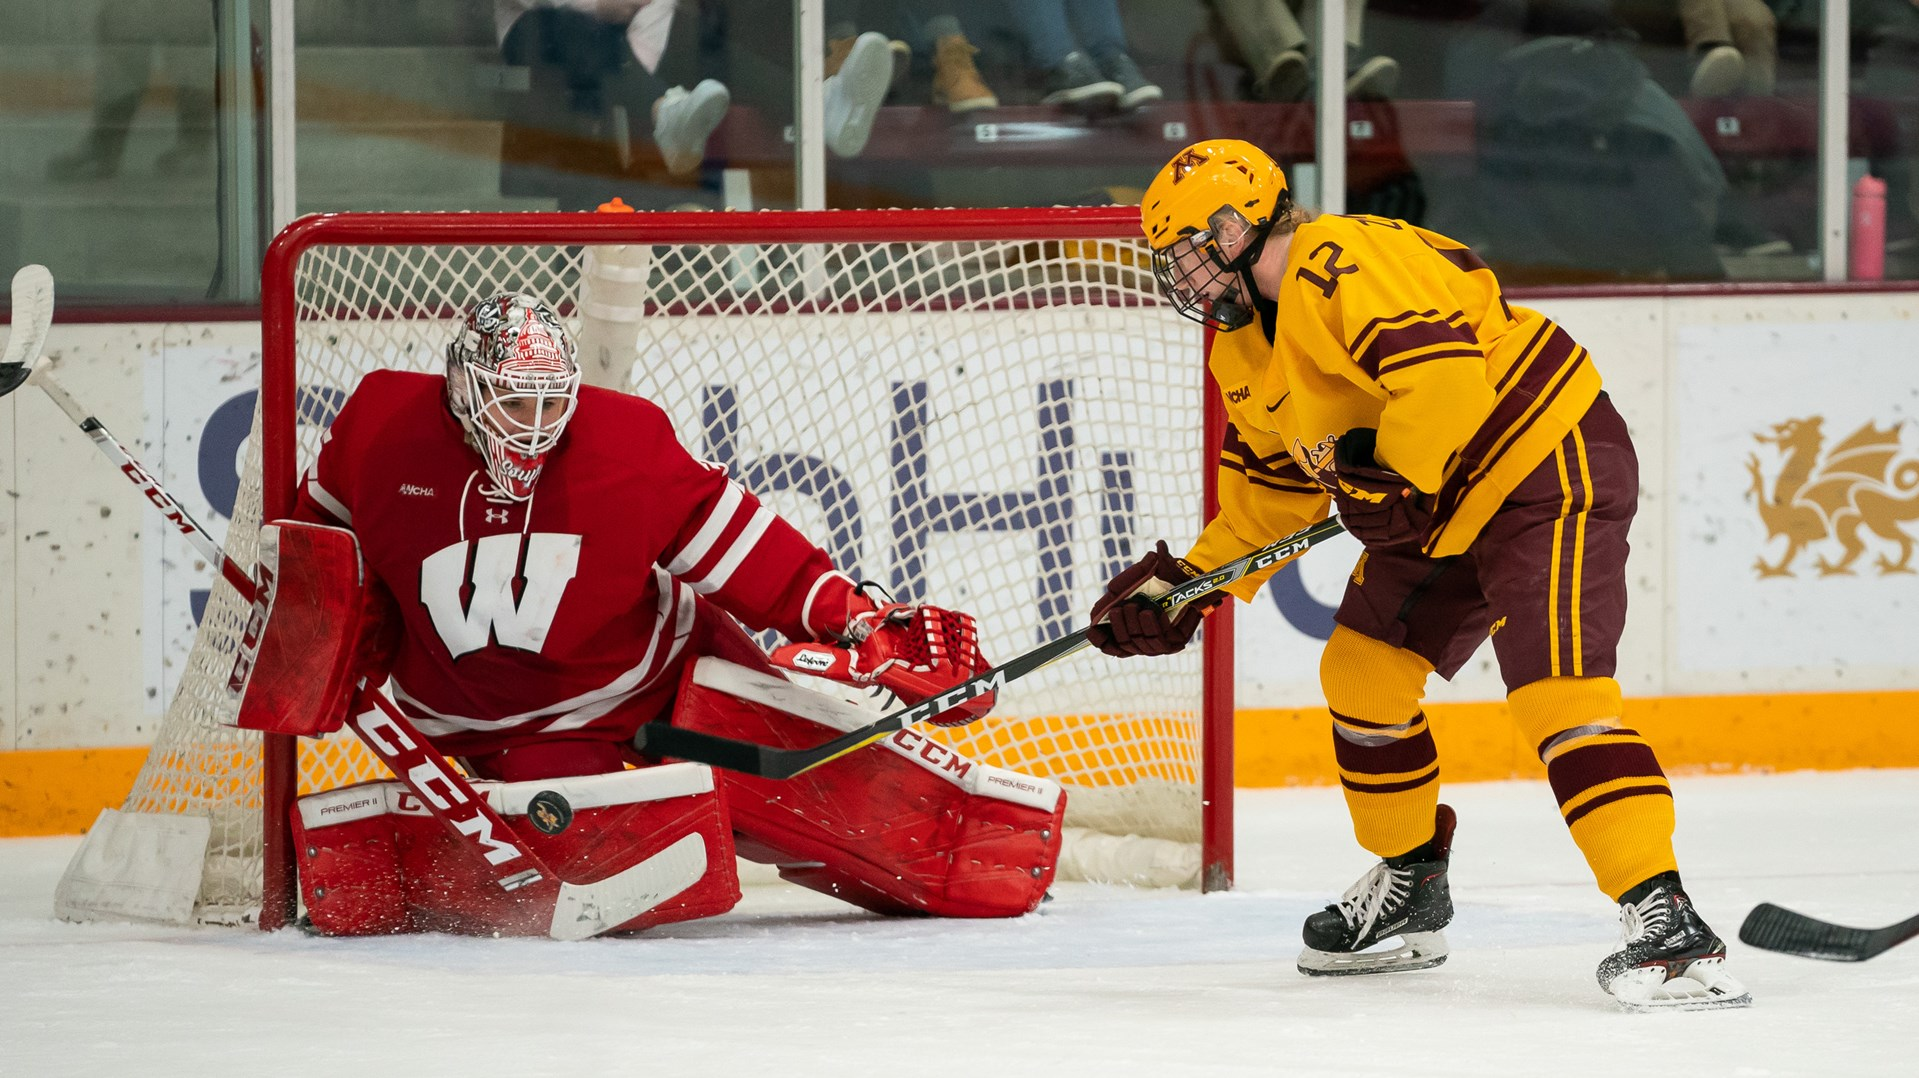 Gophers Fall to Badgers 5-4 in Overtime